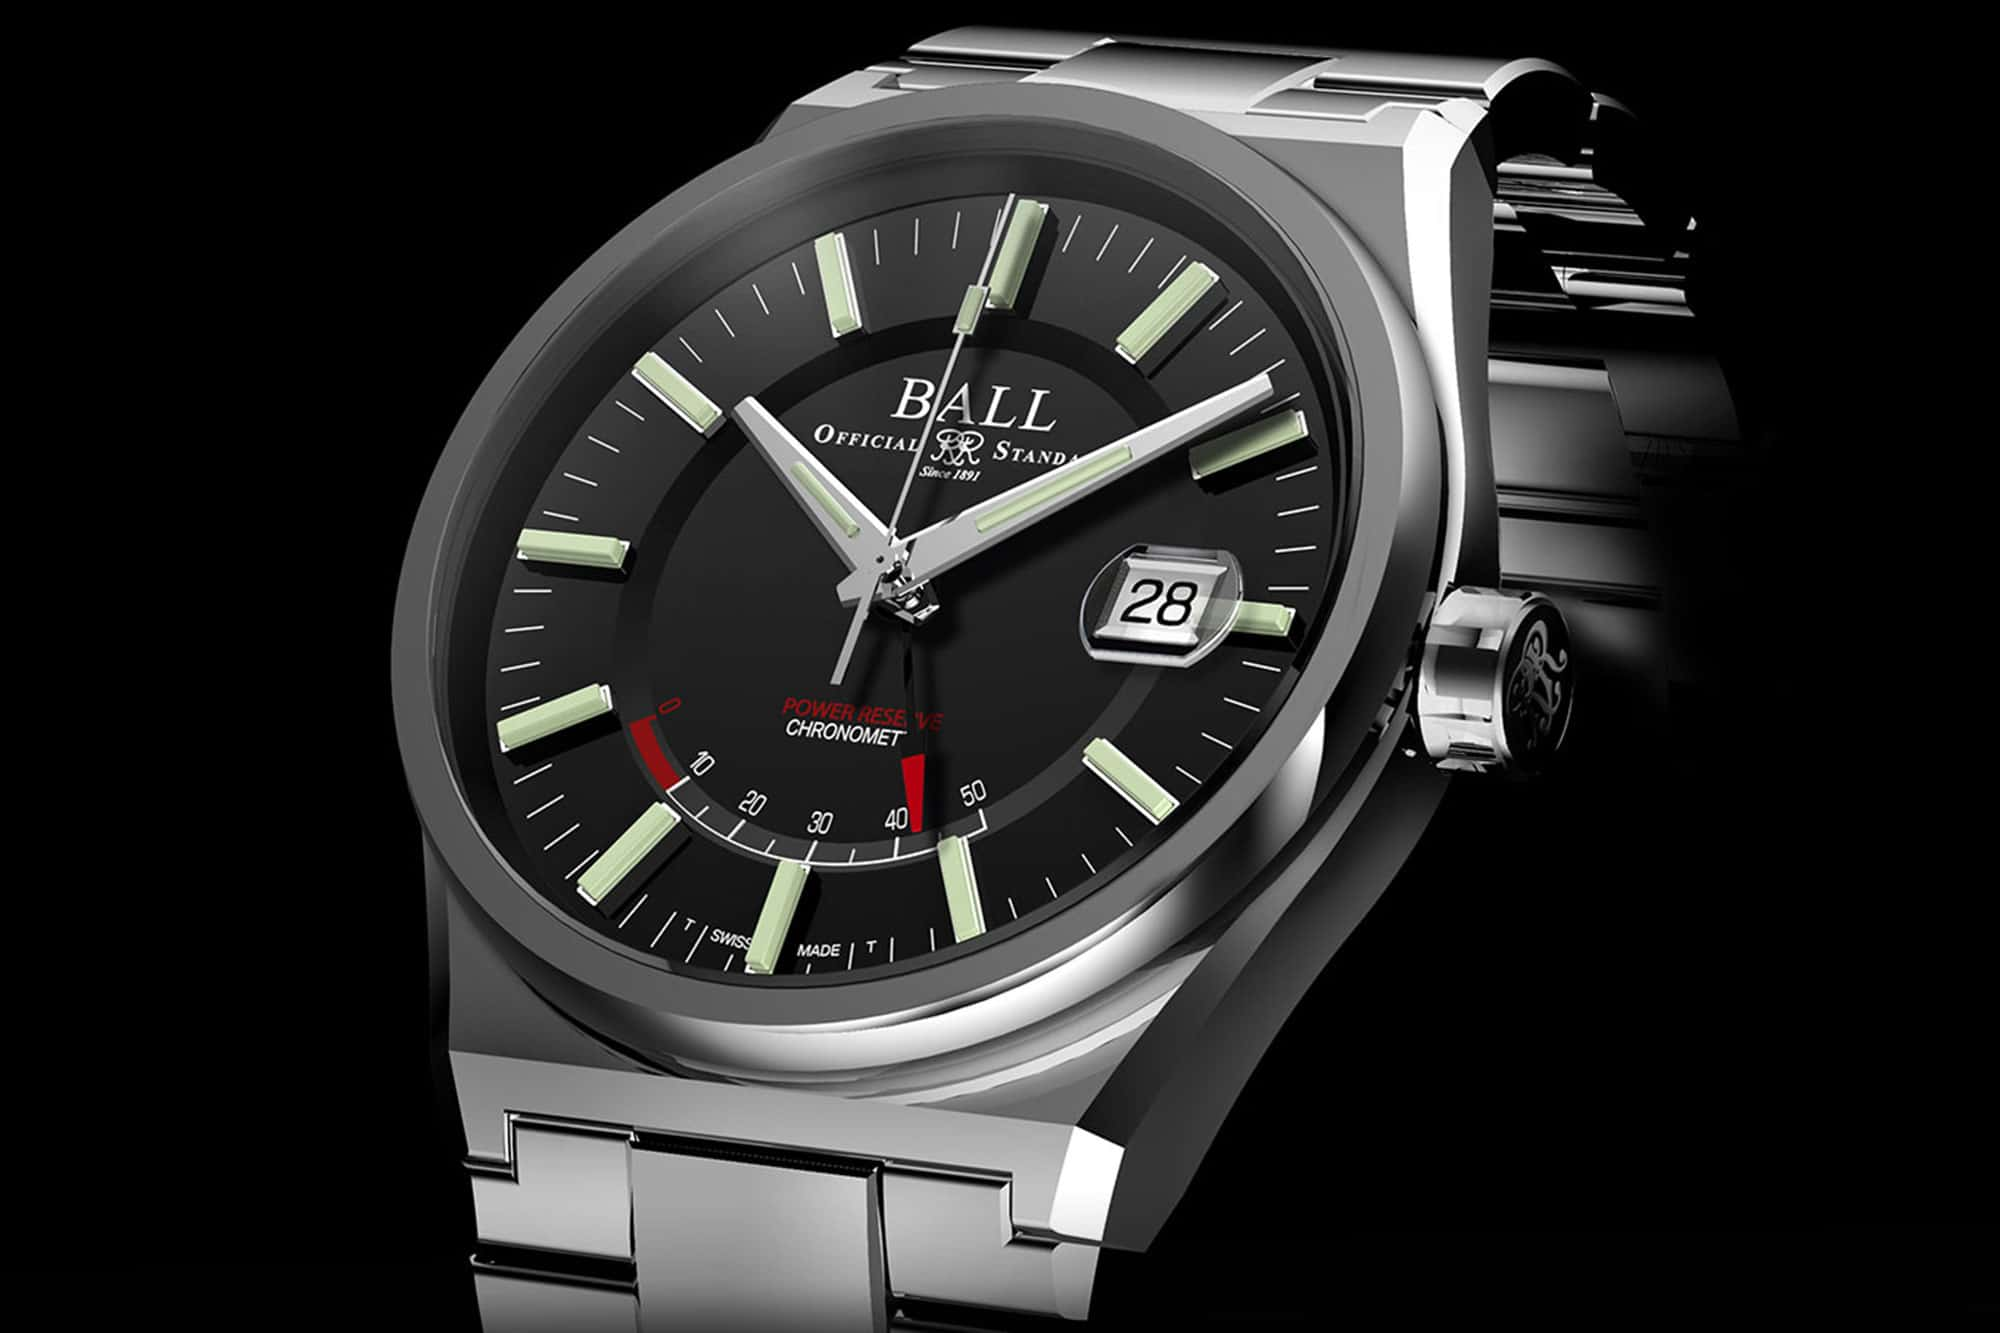 Introducing the Ball Roadmaster Icebreaker in 904L Steel